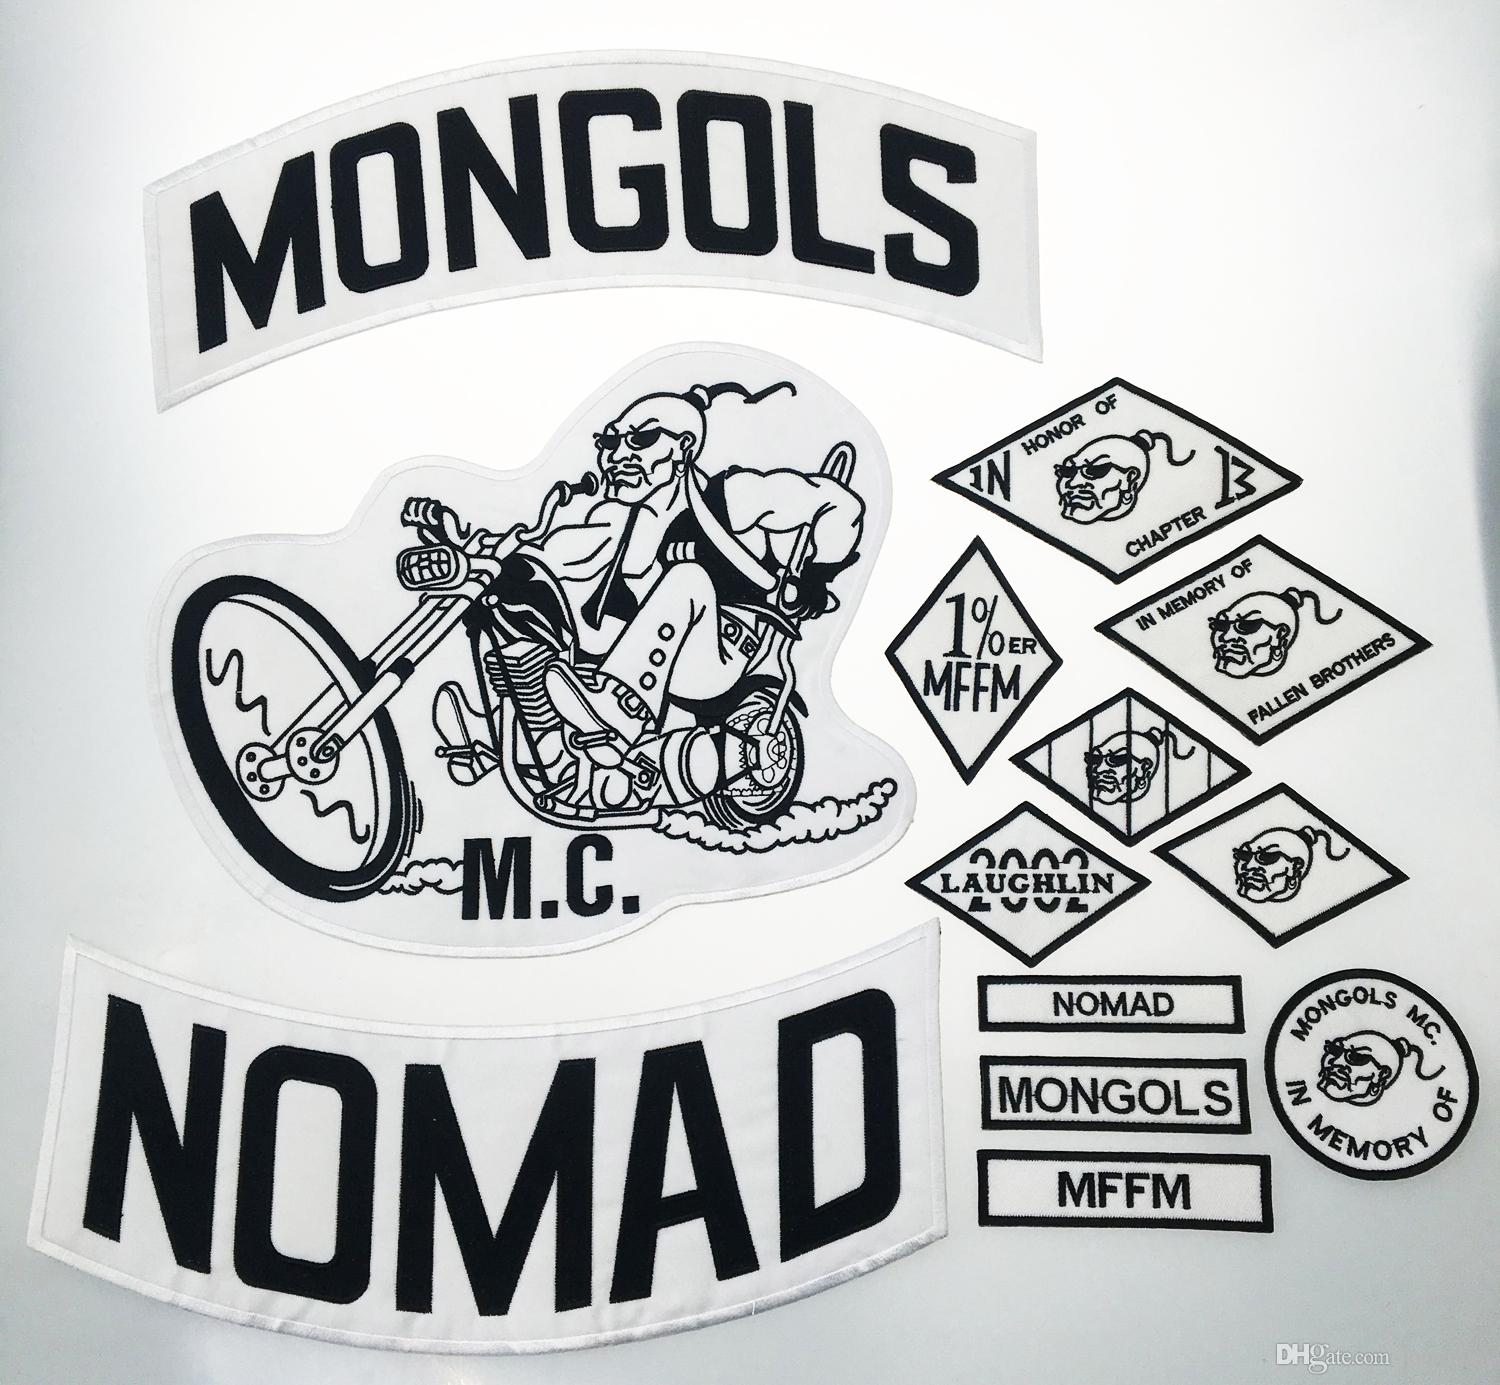 Top Quality MONGOLS NOMAD MC Biker Vest Embroidered Patch 1% MFFM IN Memory  Iron On Full Back of Jacket Motorcyle Patch Free Shipping